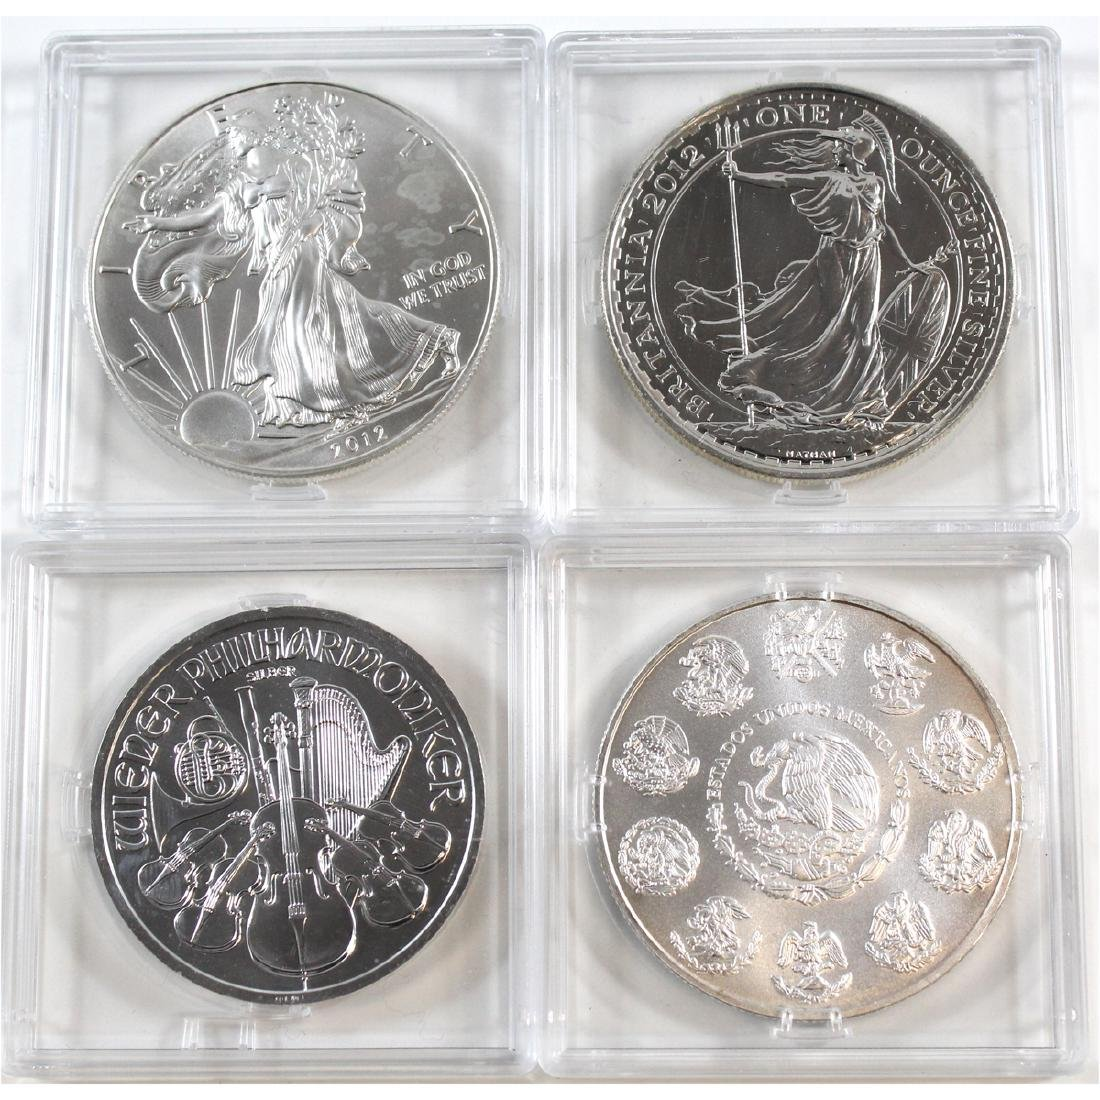 Lot of 4x 2012 1oz .999 Fine Silver Coins - Mexico